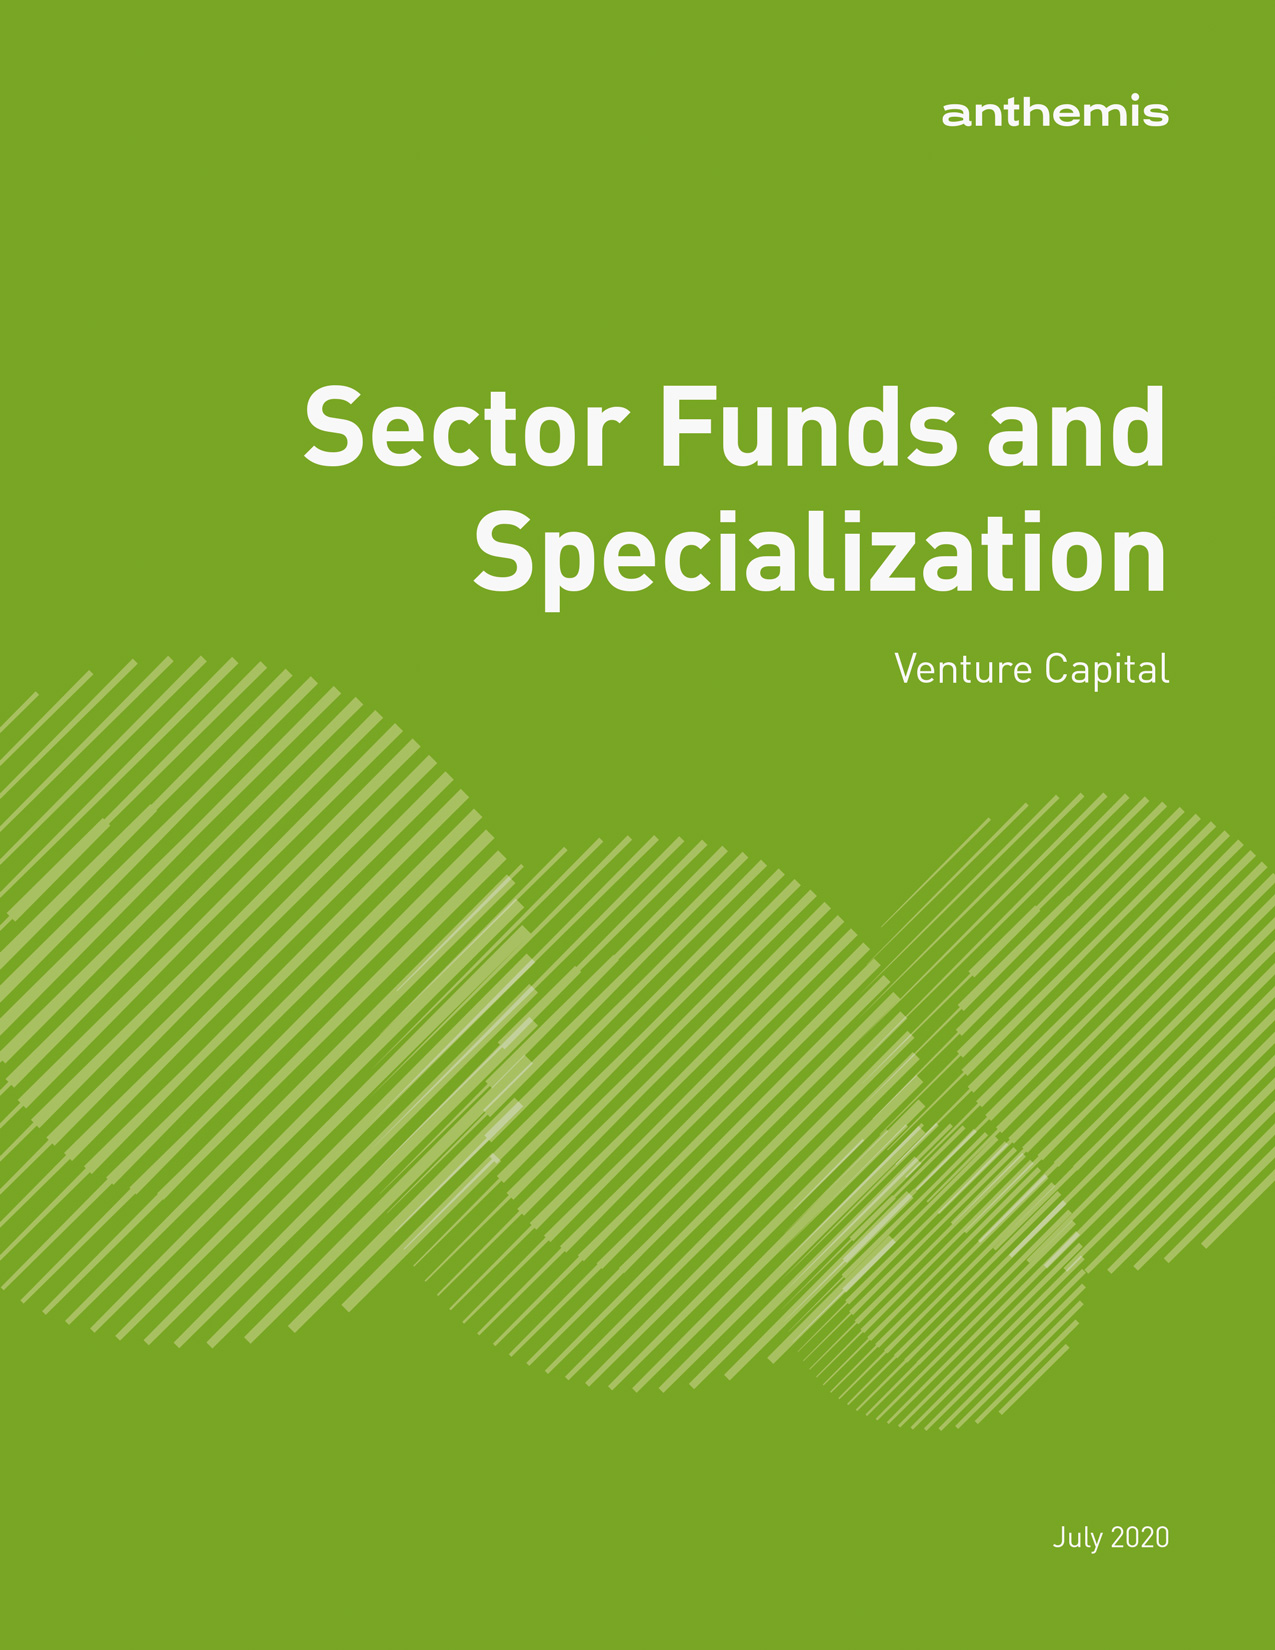 Anthemis-Sector-Funds-and-Specialization-Research-Piece-July-2020